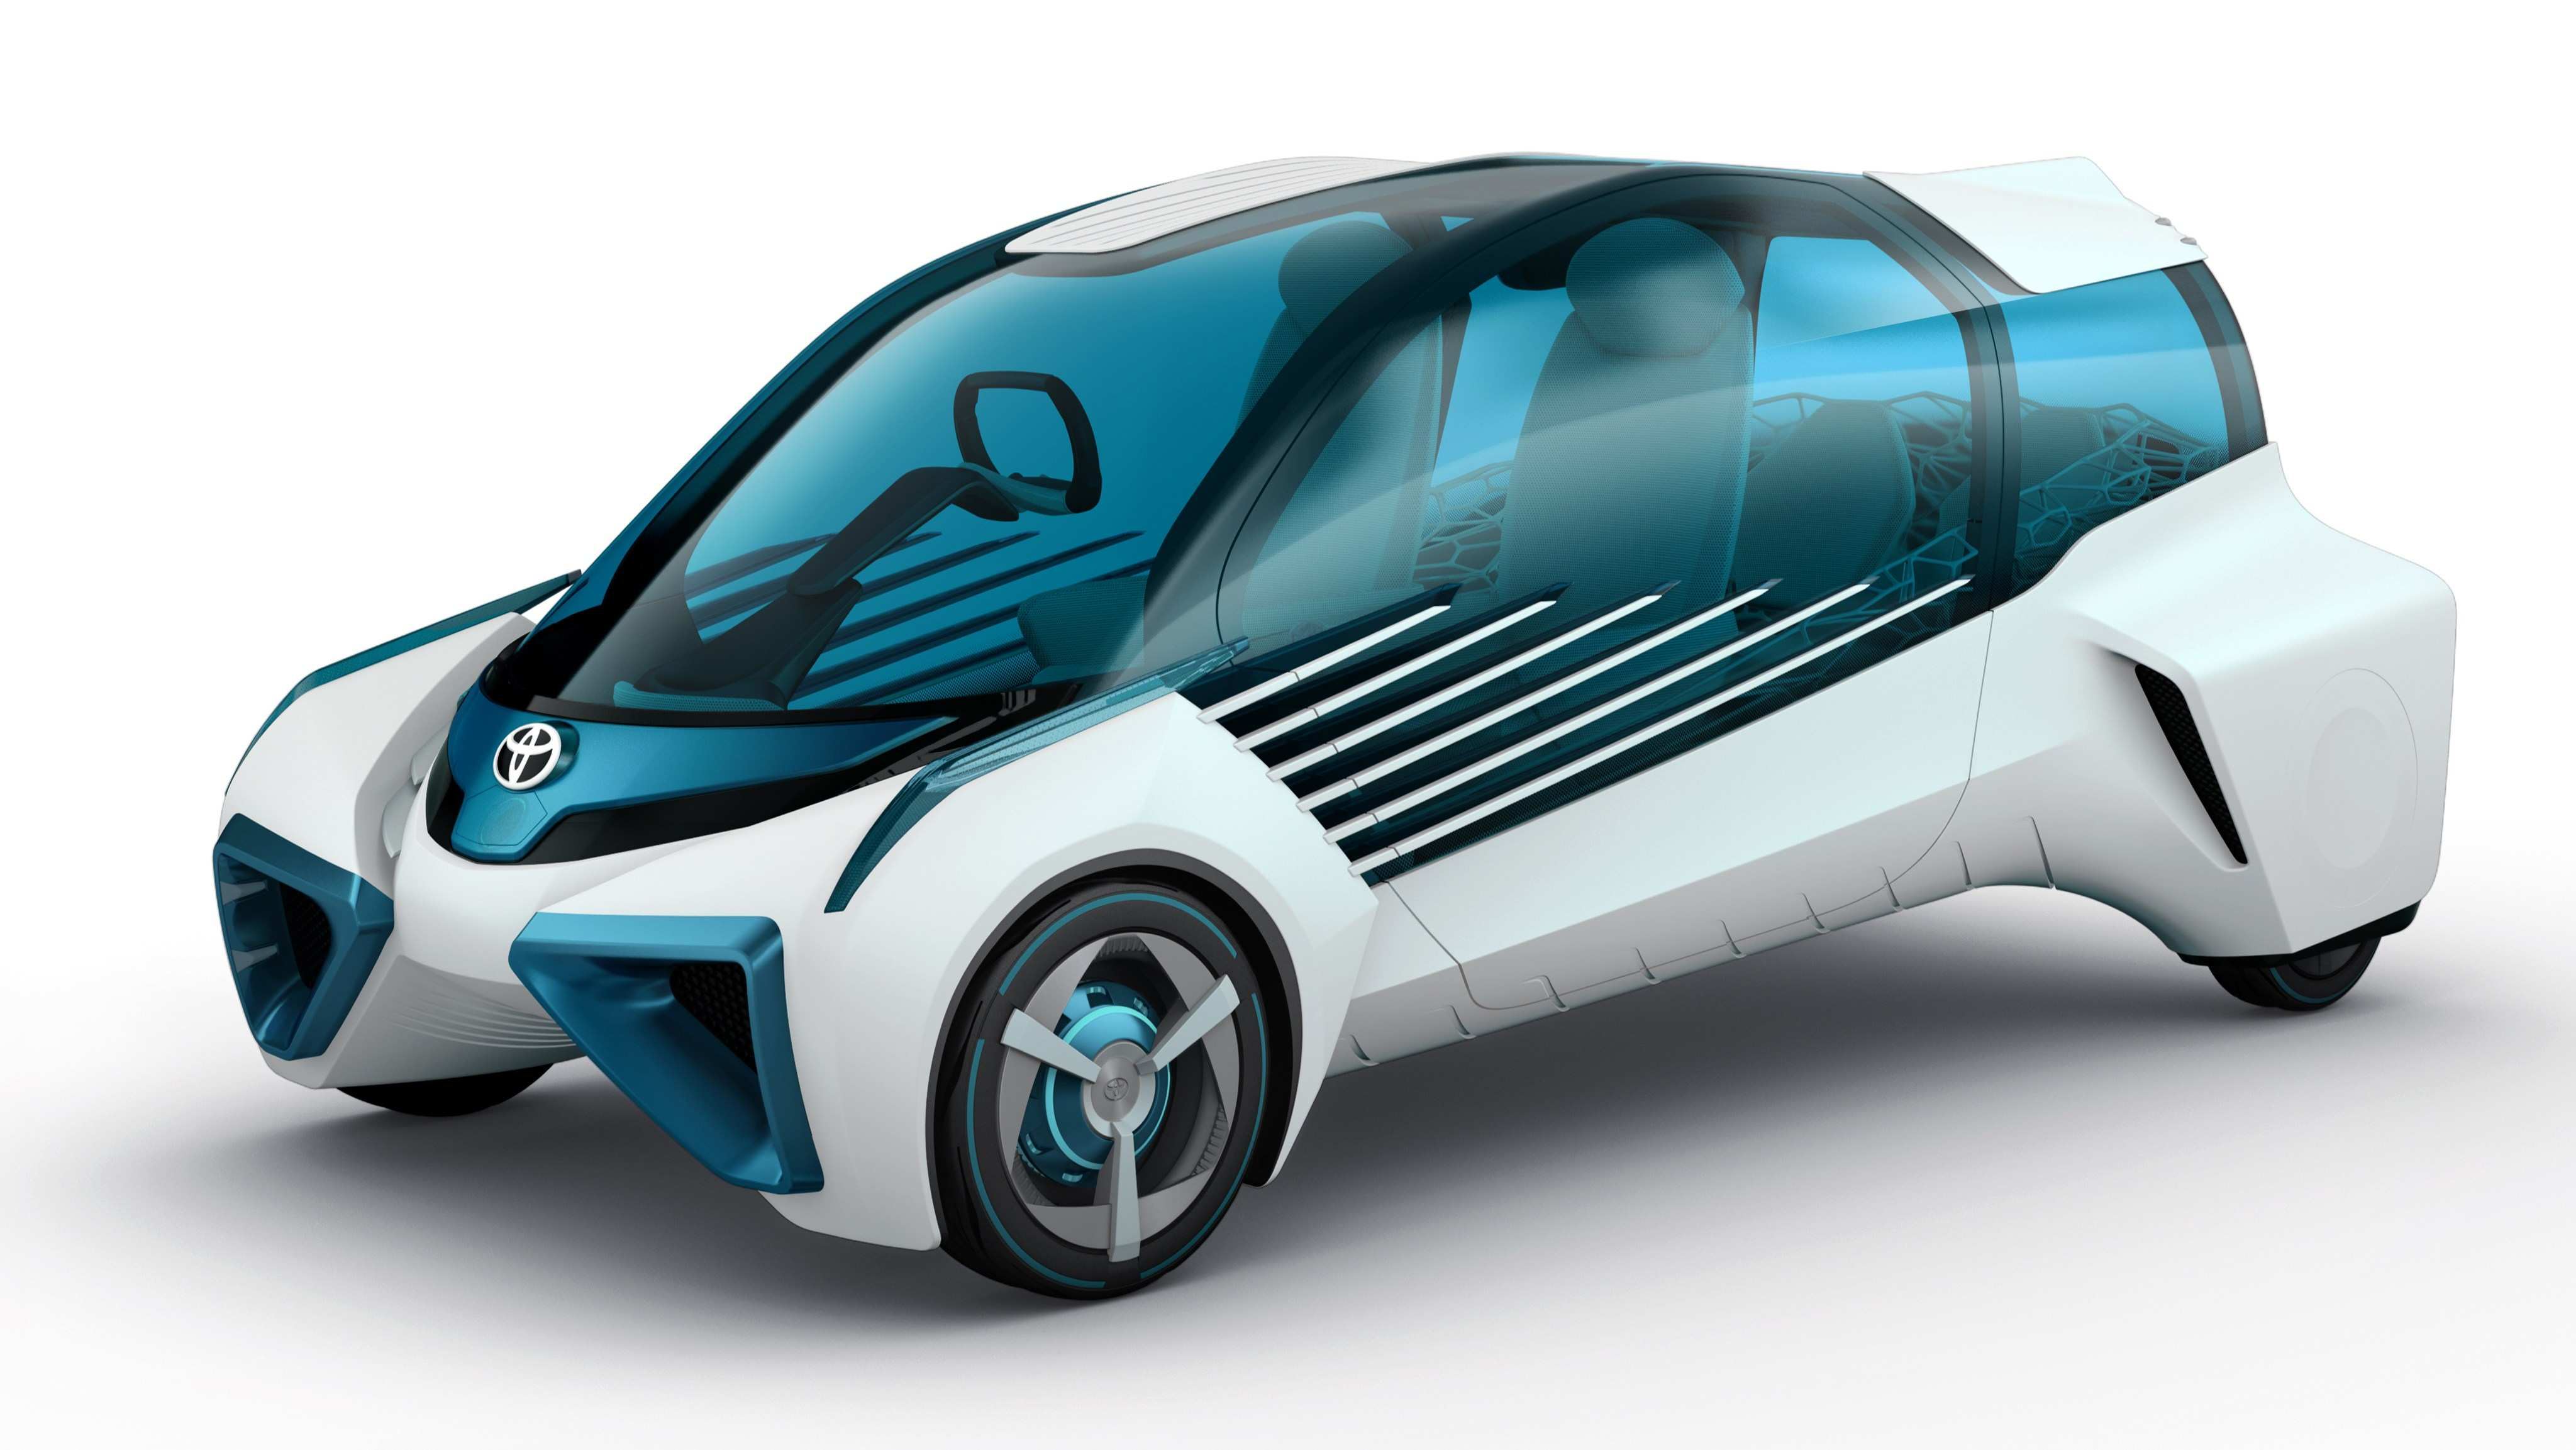 76 All New Toyota 2020 Plans Style for Toyota 2020 Plans